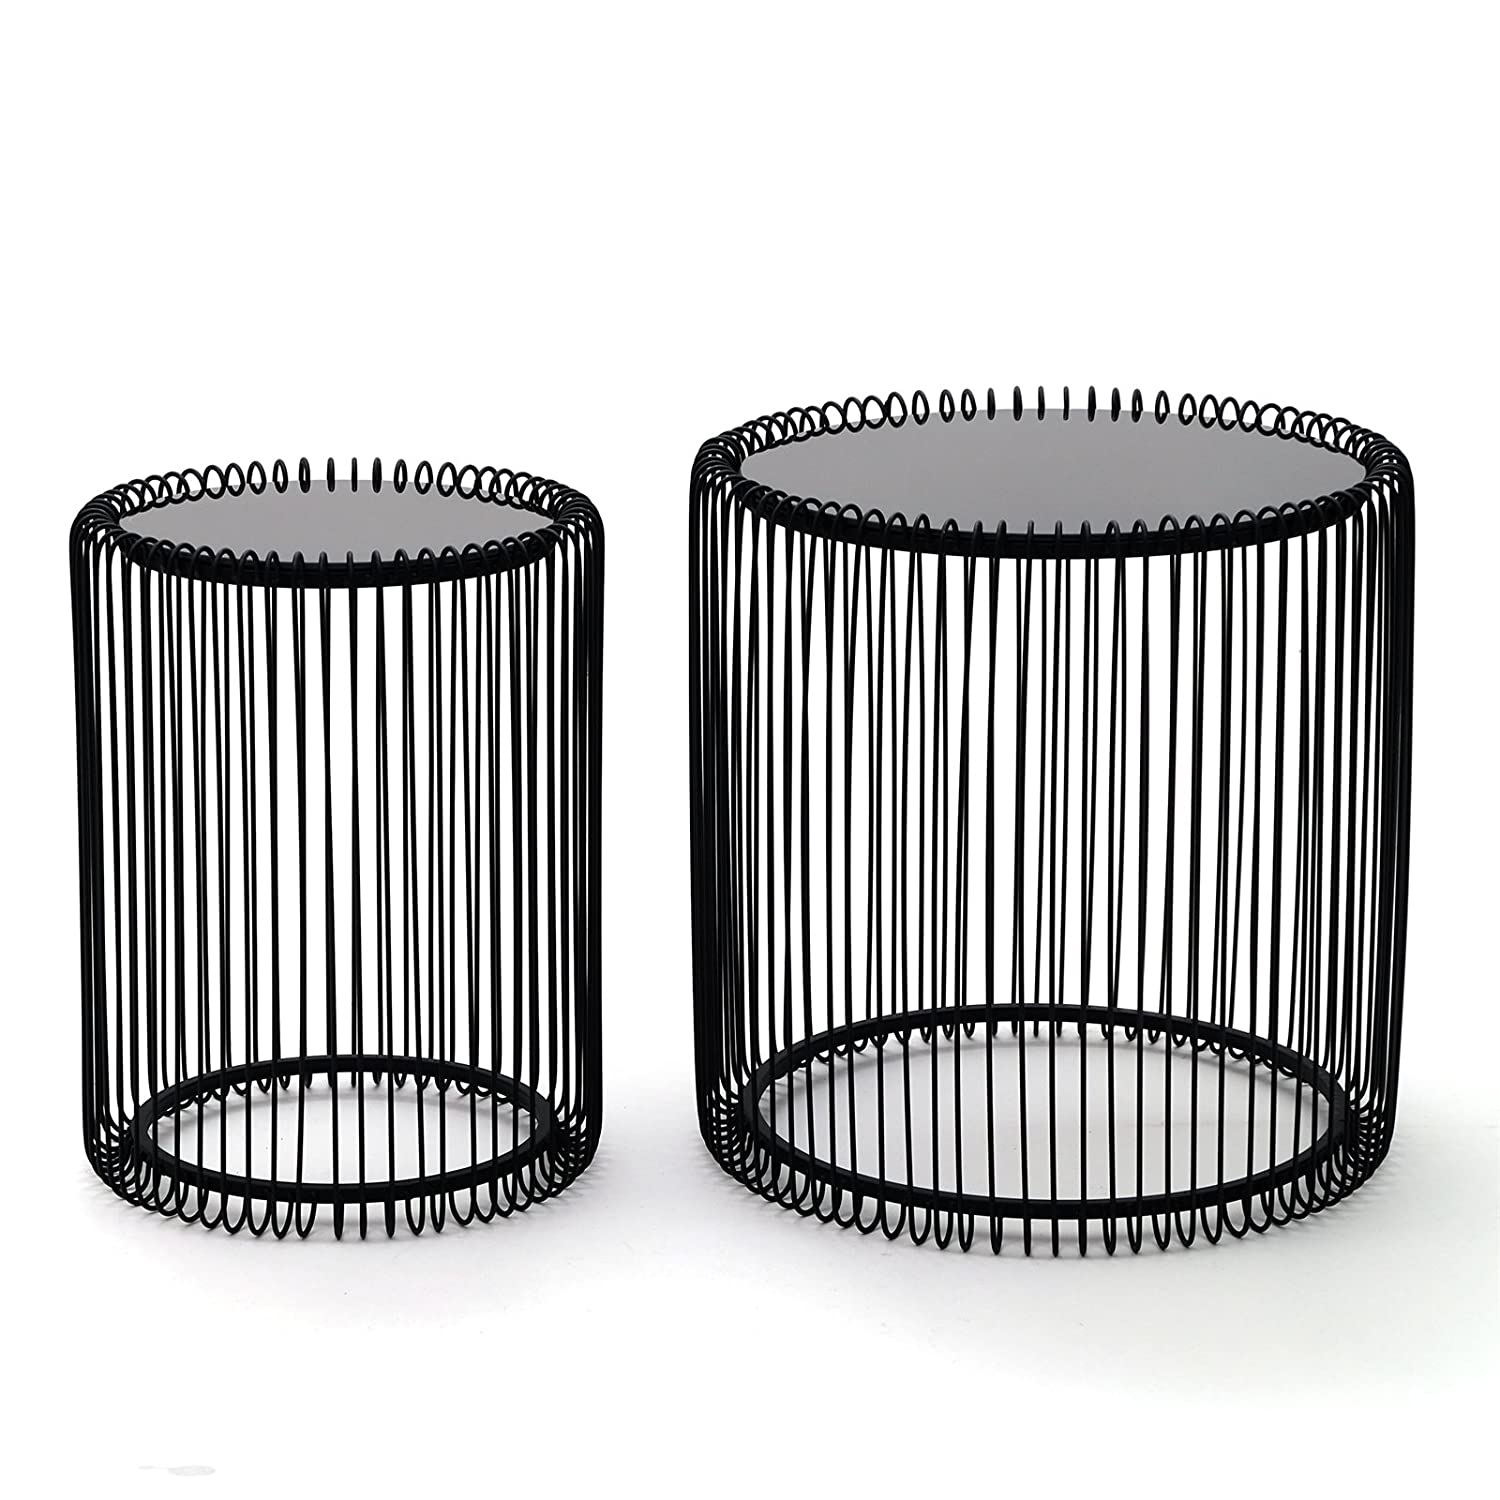 Kare design wire coffee table metal black amazon kitchen 2 stylish side table wire 2 pcs black round coffee greentooth Images